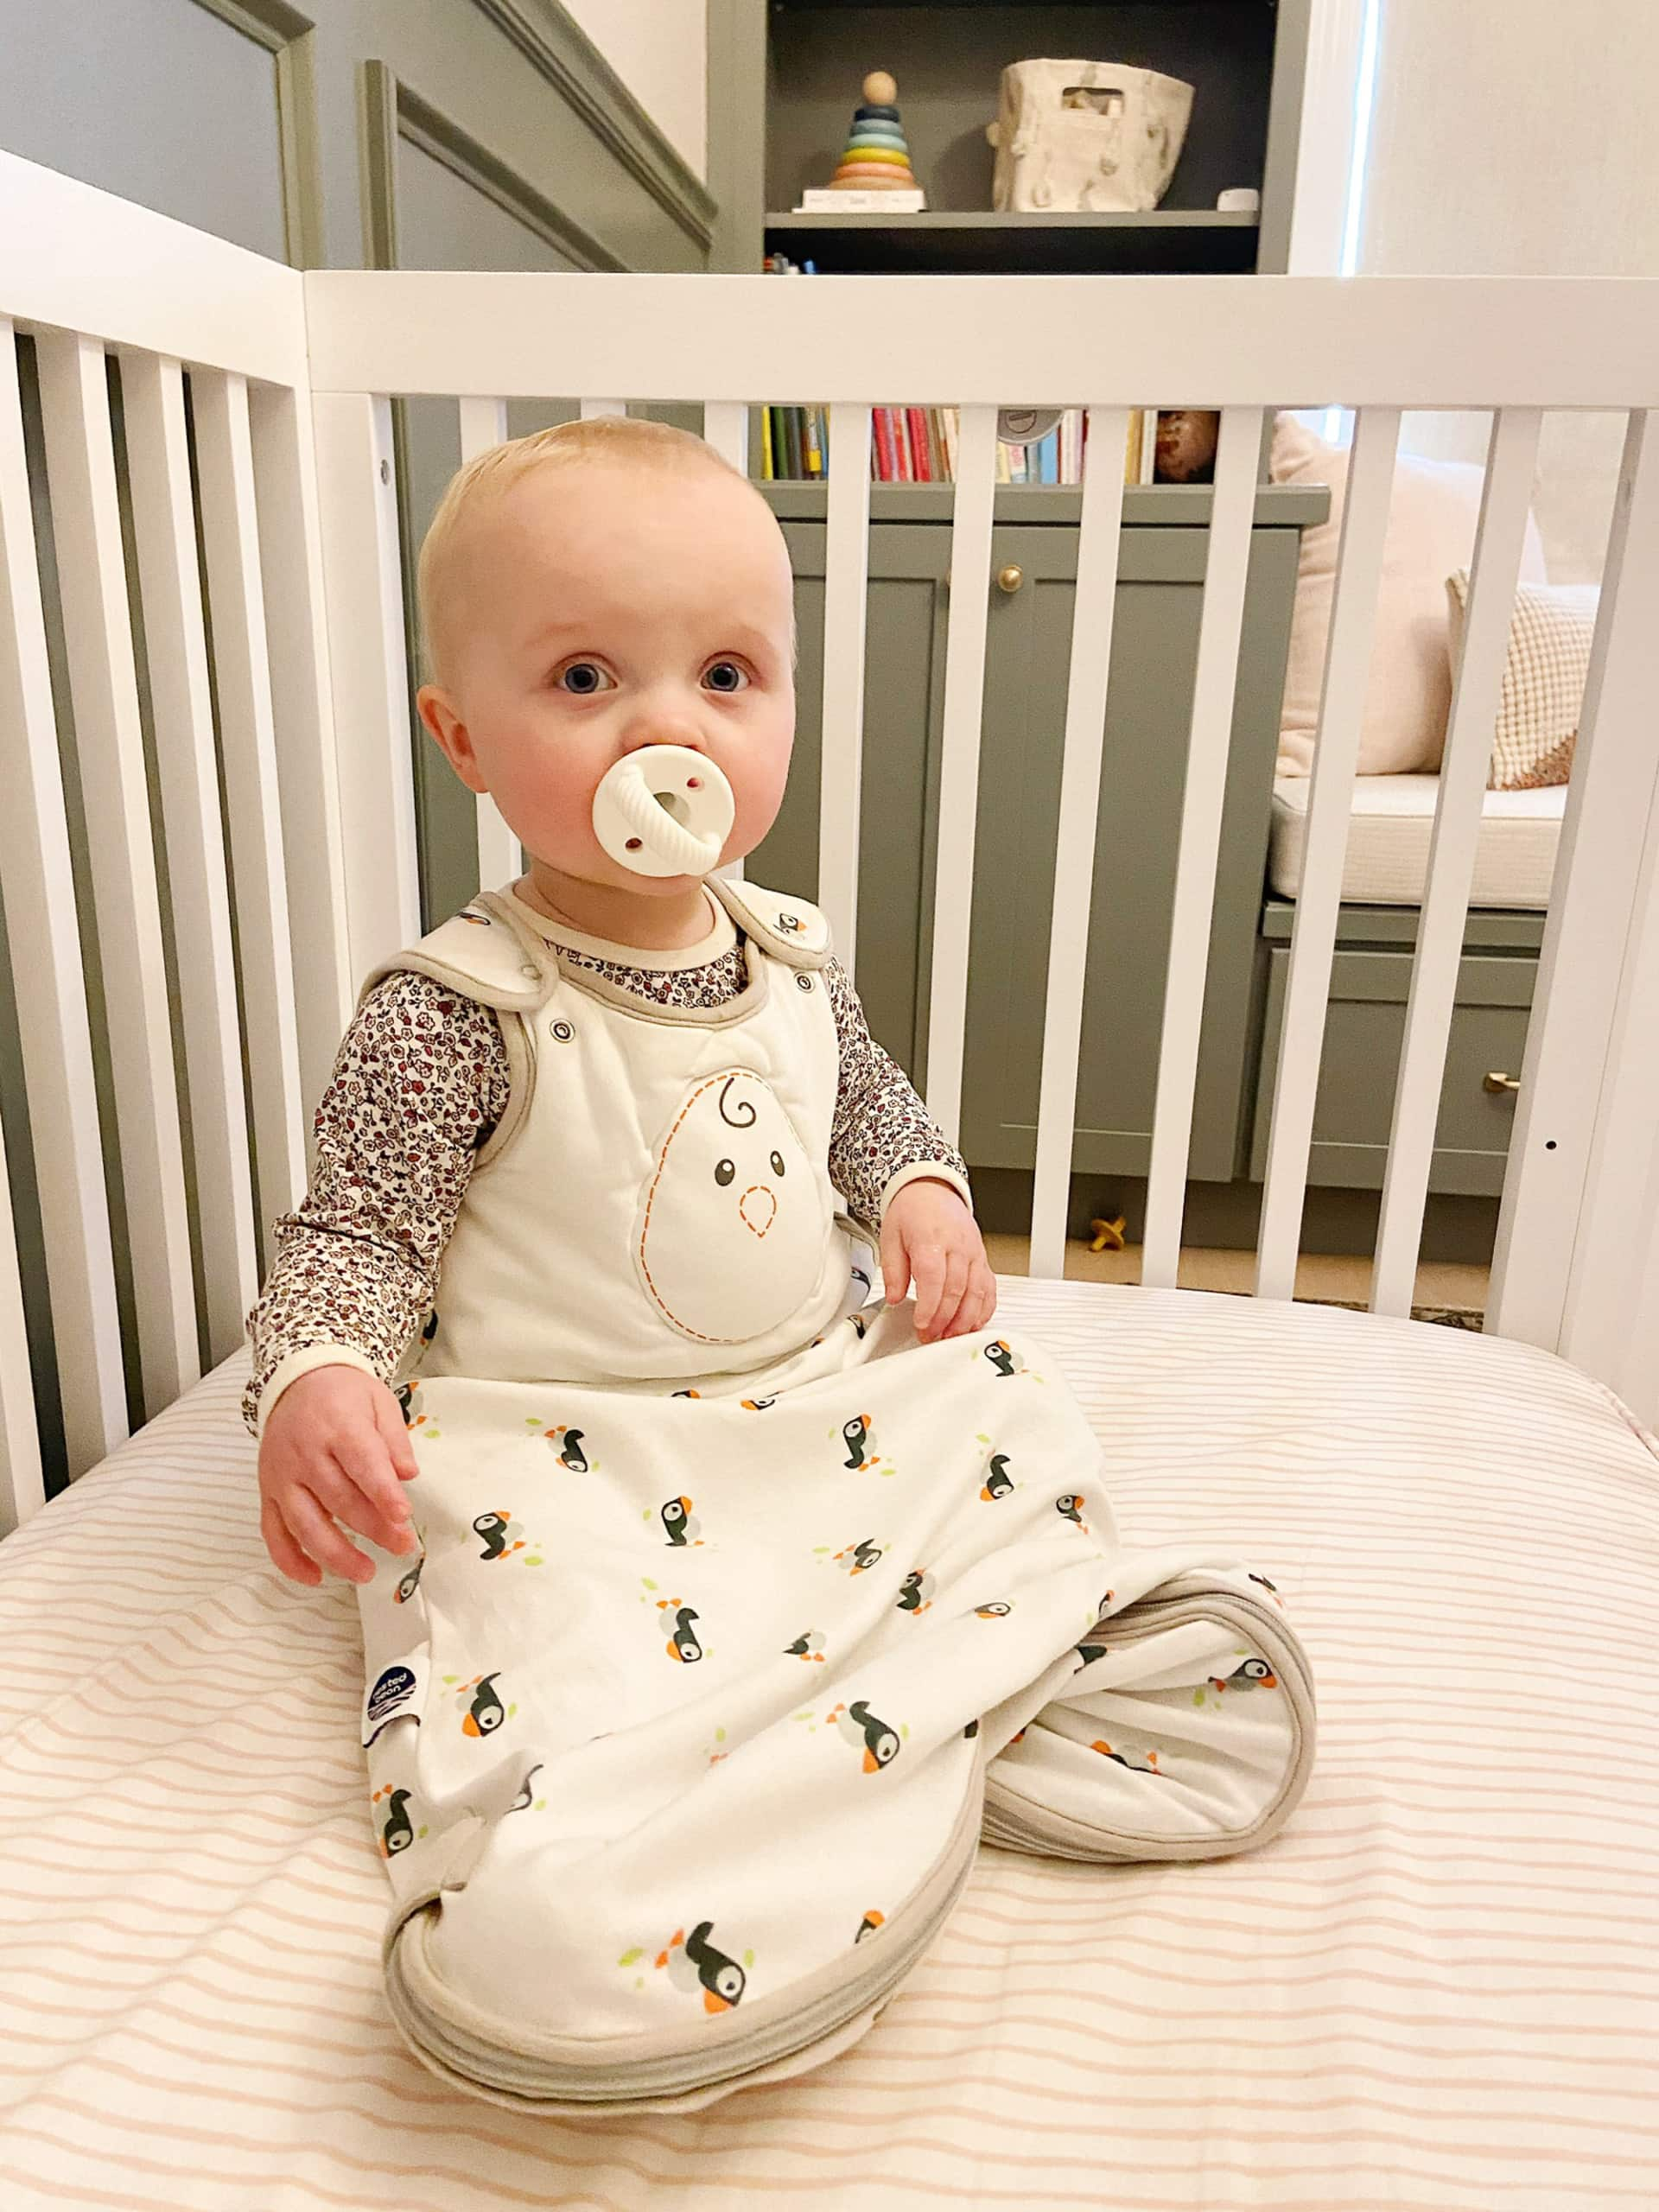 Rory in her crib at 11 months old